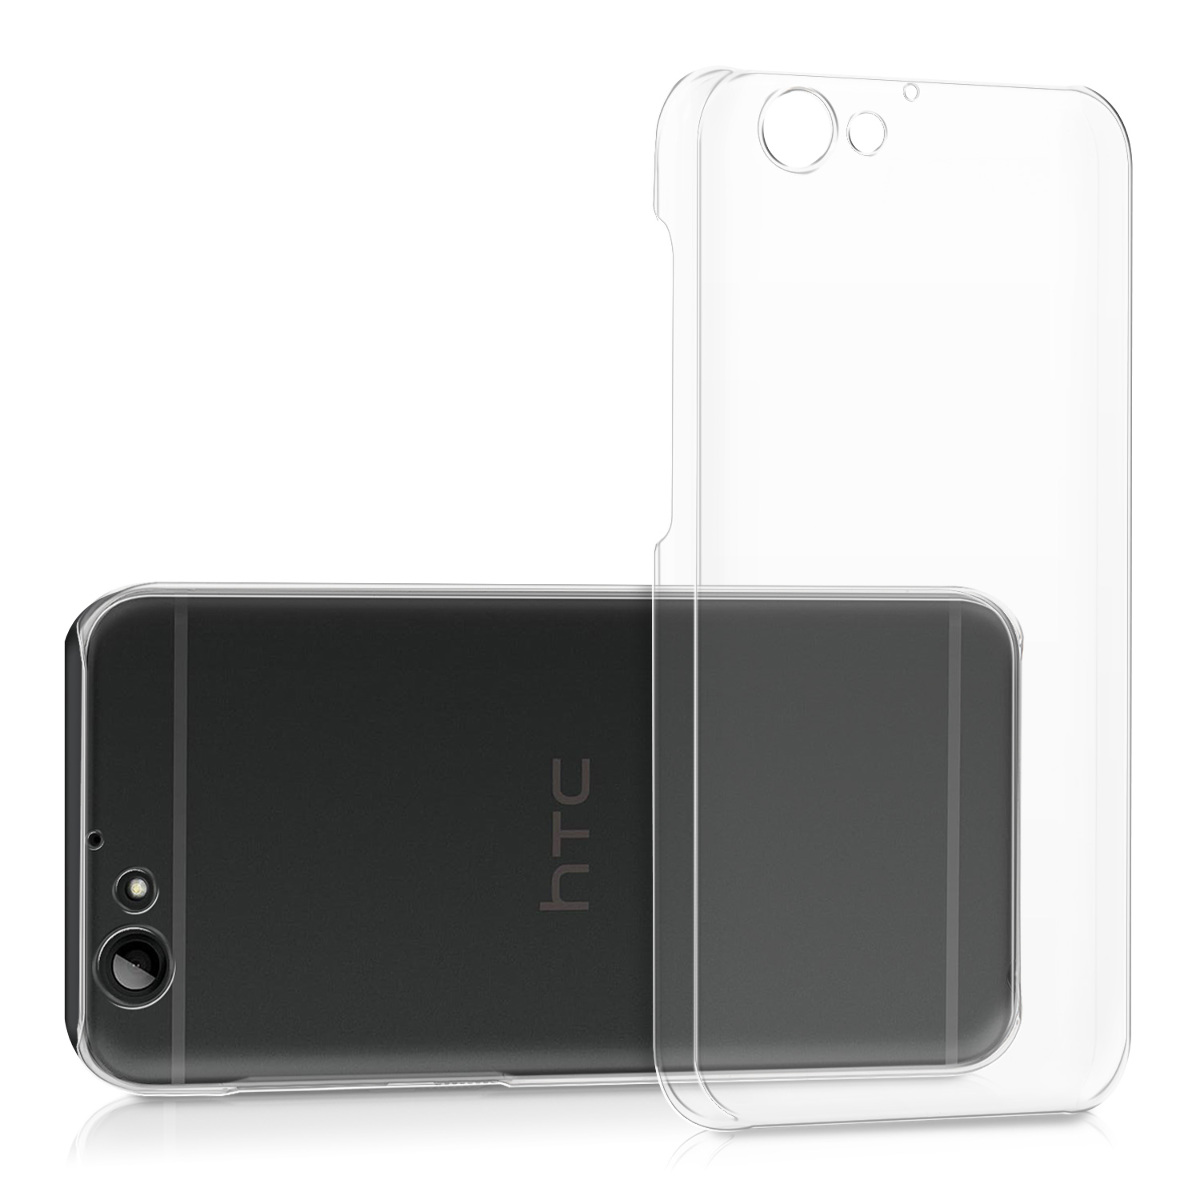 kwmobile-CRYSTAL-HARD-CASE-FOR-HTC-ONE-A9S-HARD-COVER-CASE-BACK-SHELL-BUMPER